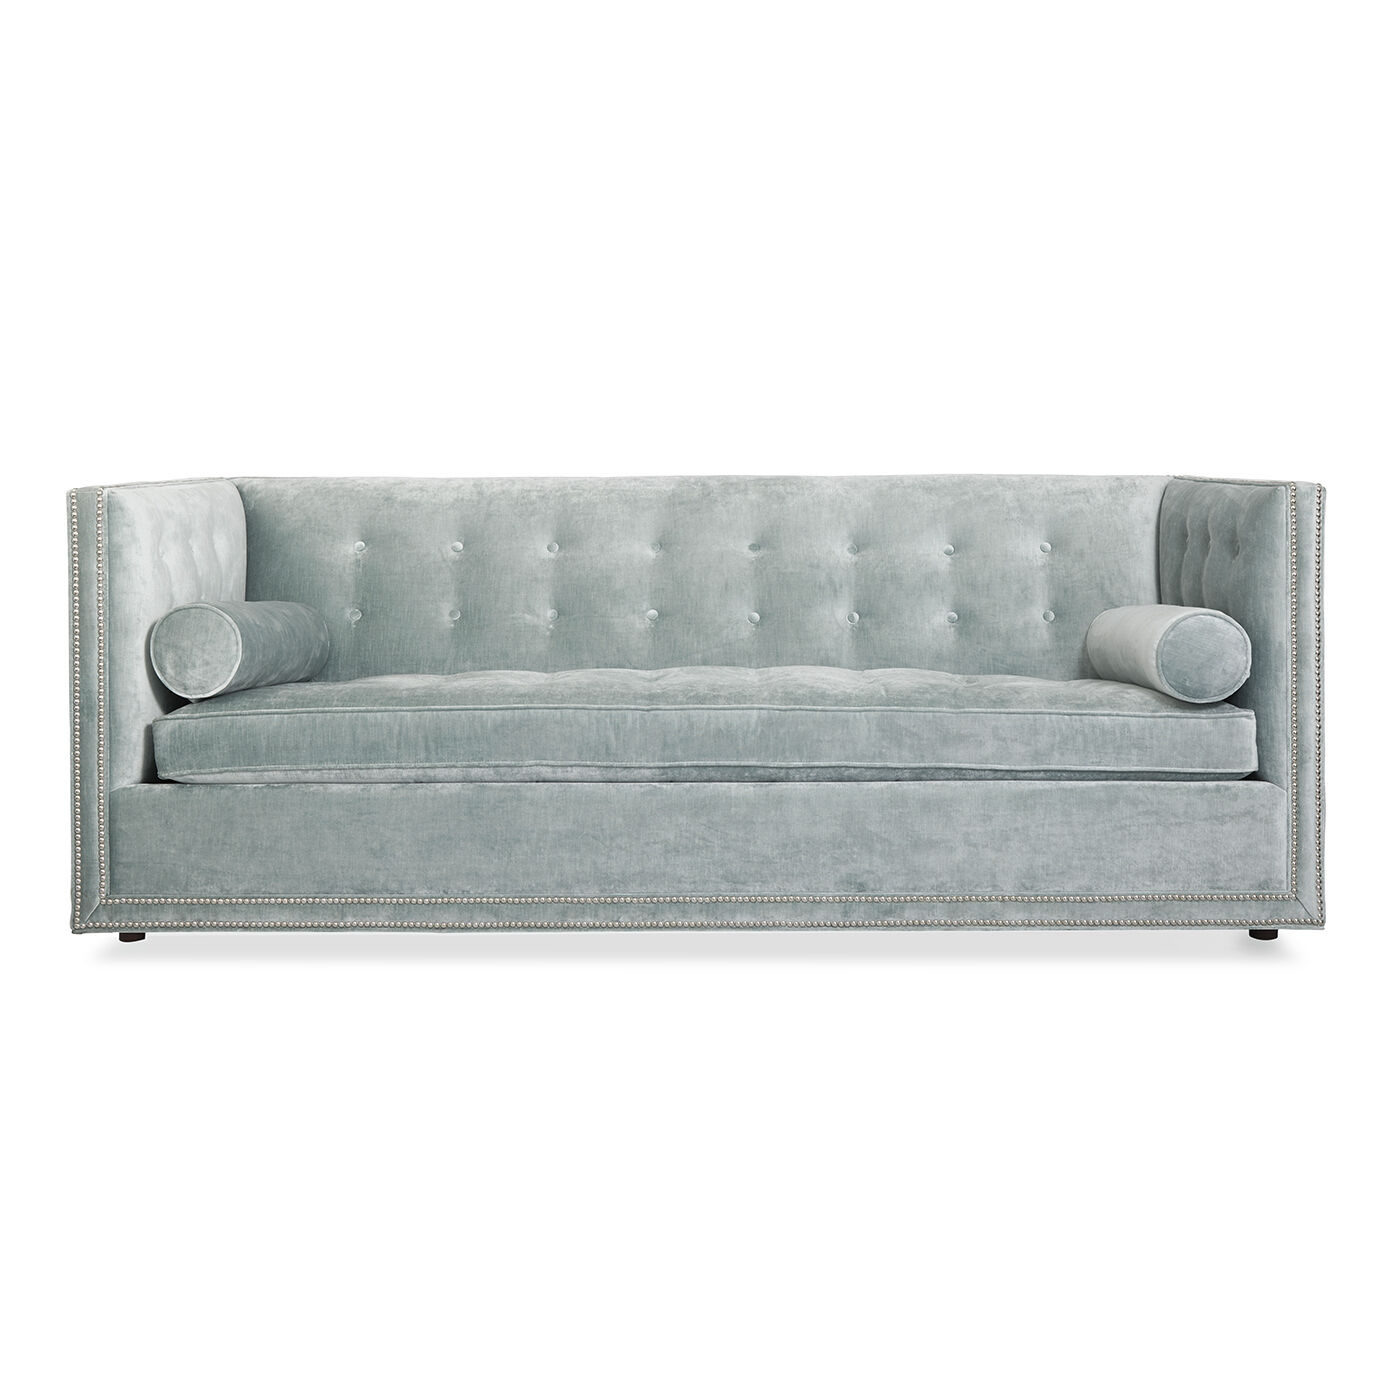 Lovely Jonathan Adler | Lampert Sleeper Sofa